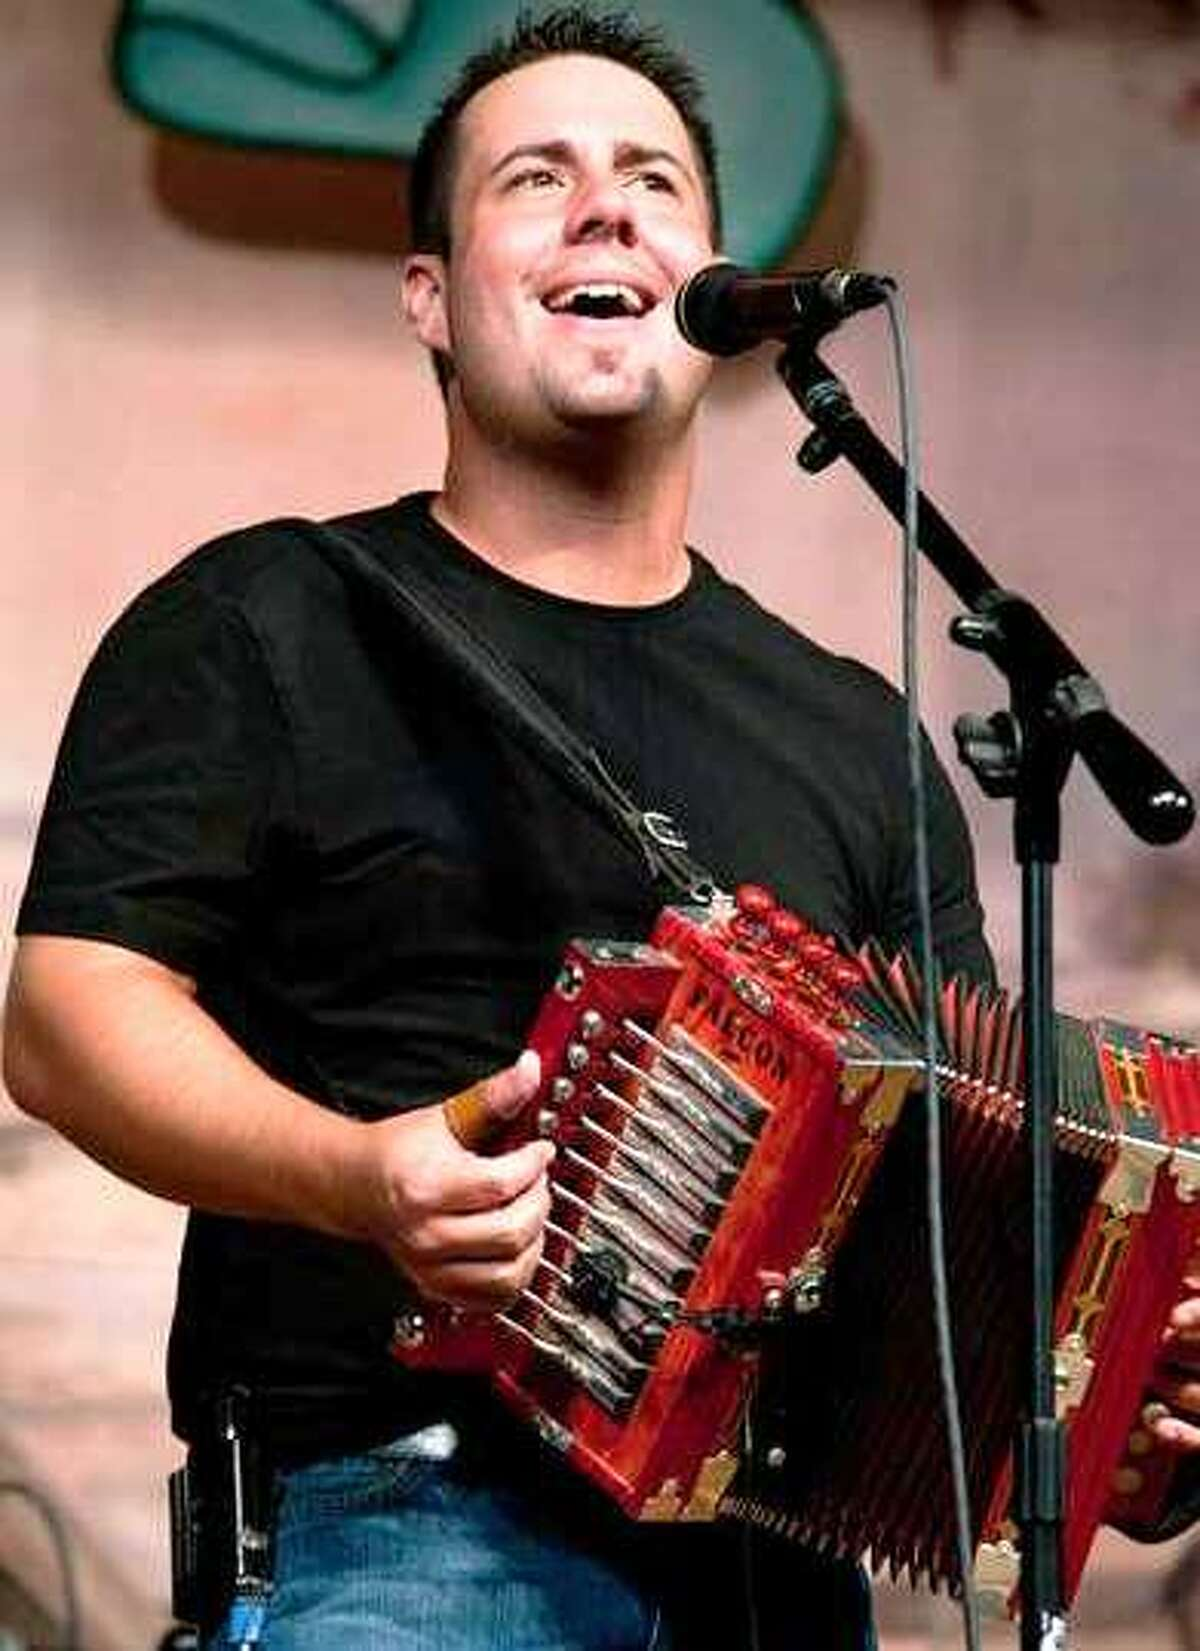 Kevin Naquin, leader of the Cajun dance band the Ossun Playboys